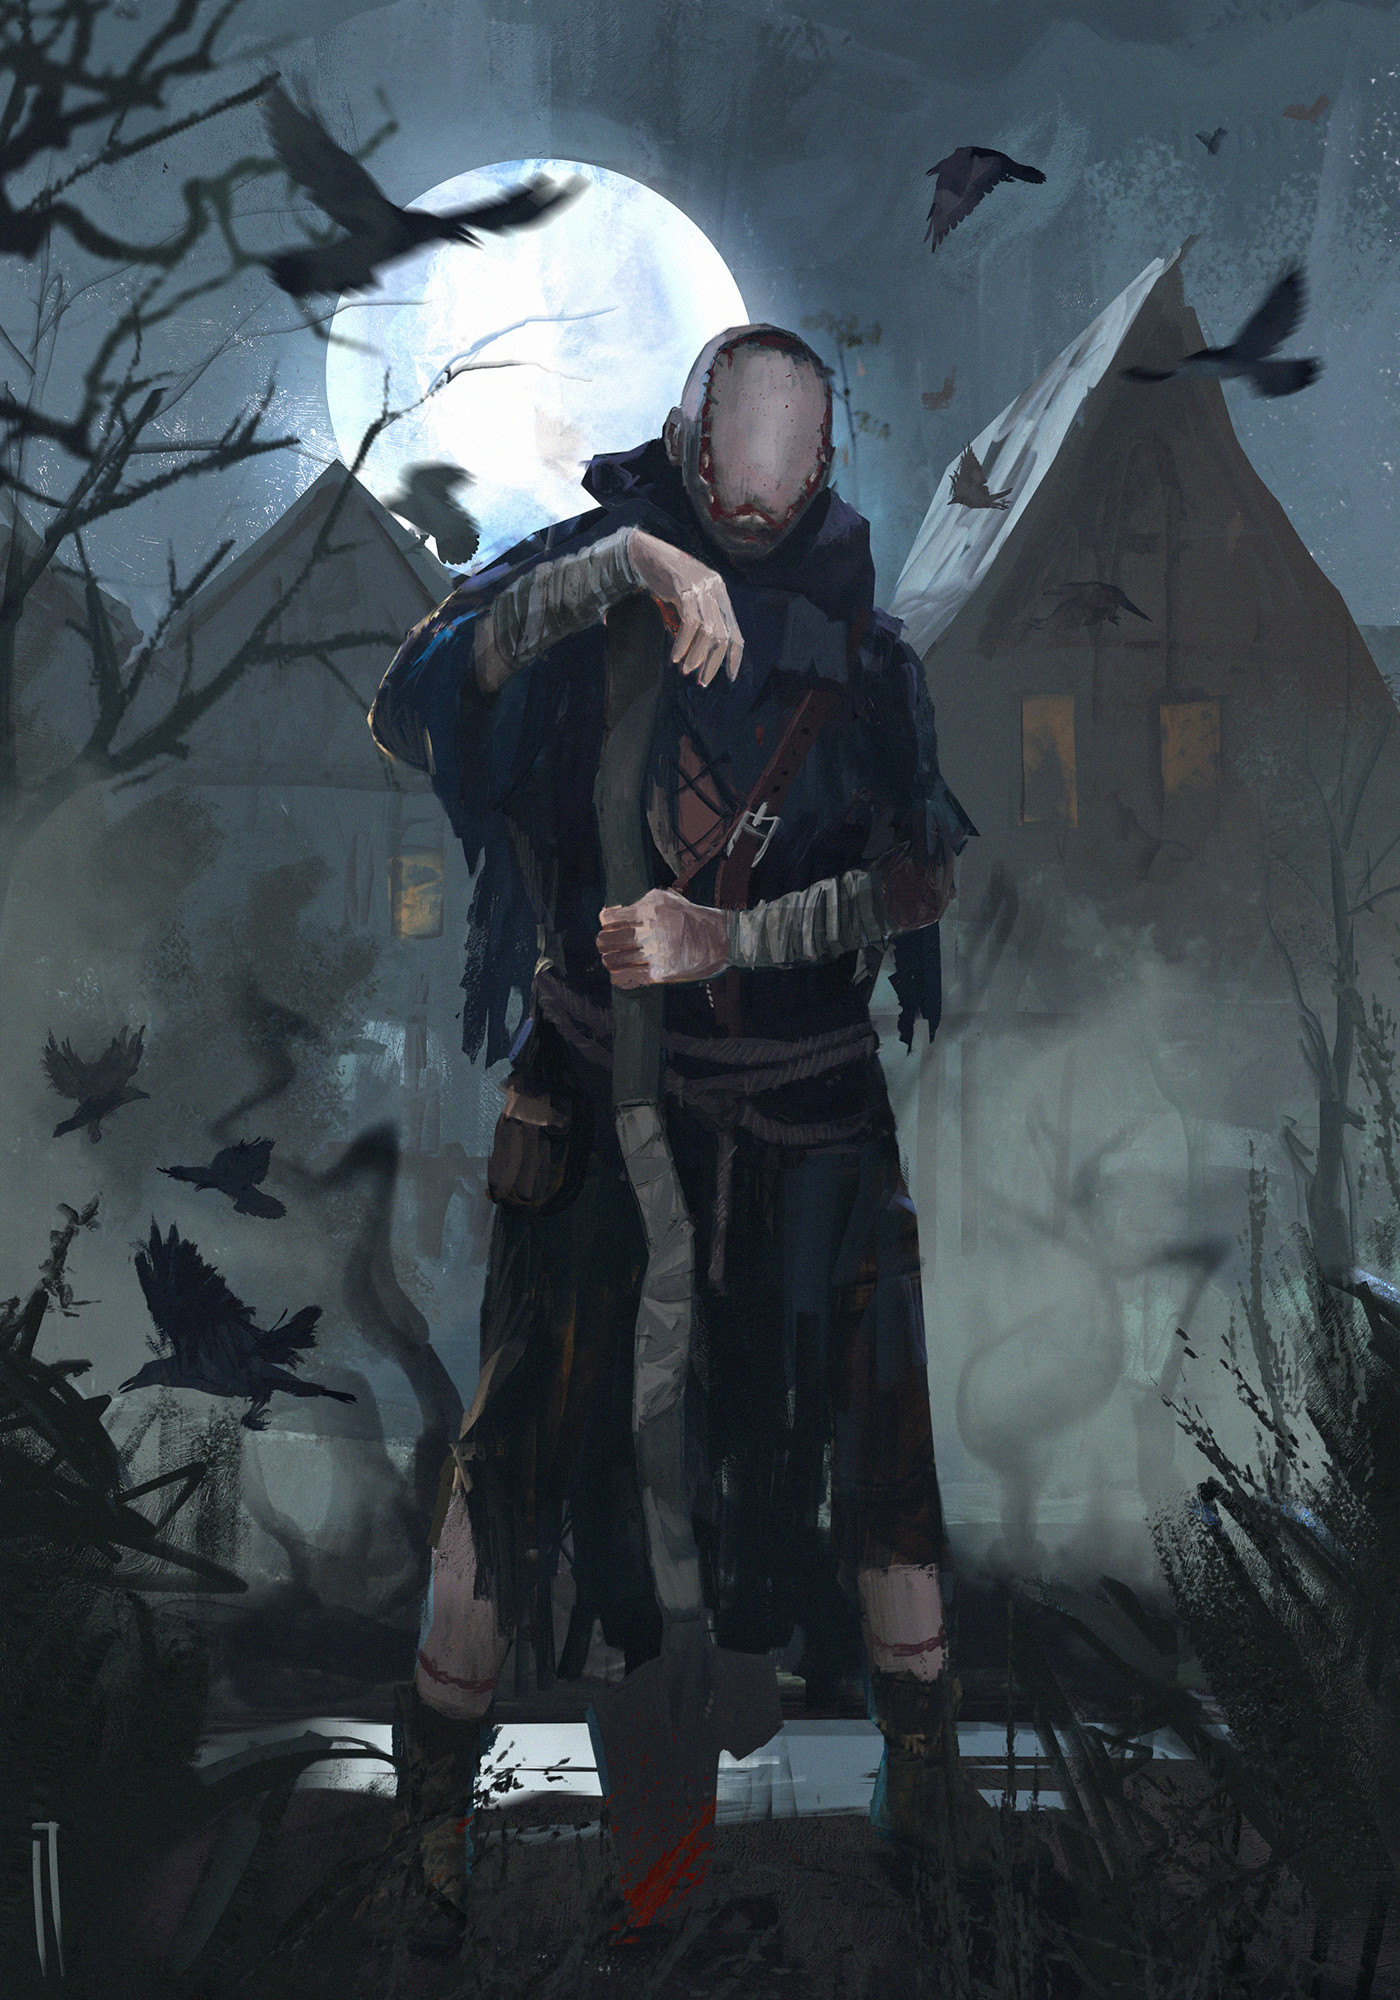 The Caretaker by Ismail Inceoglu - Witcher 3: Wild Hunt, the